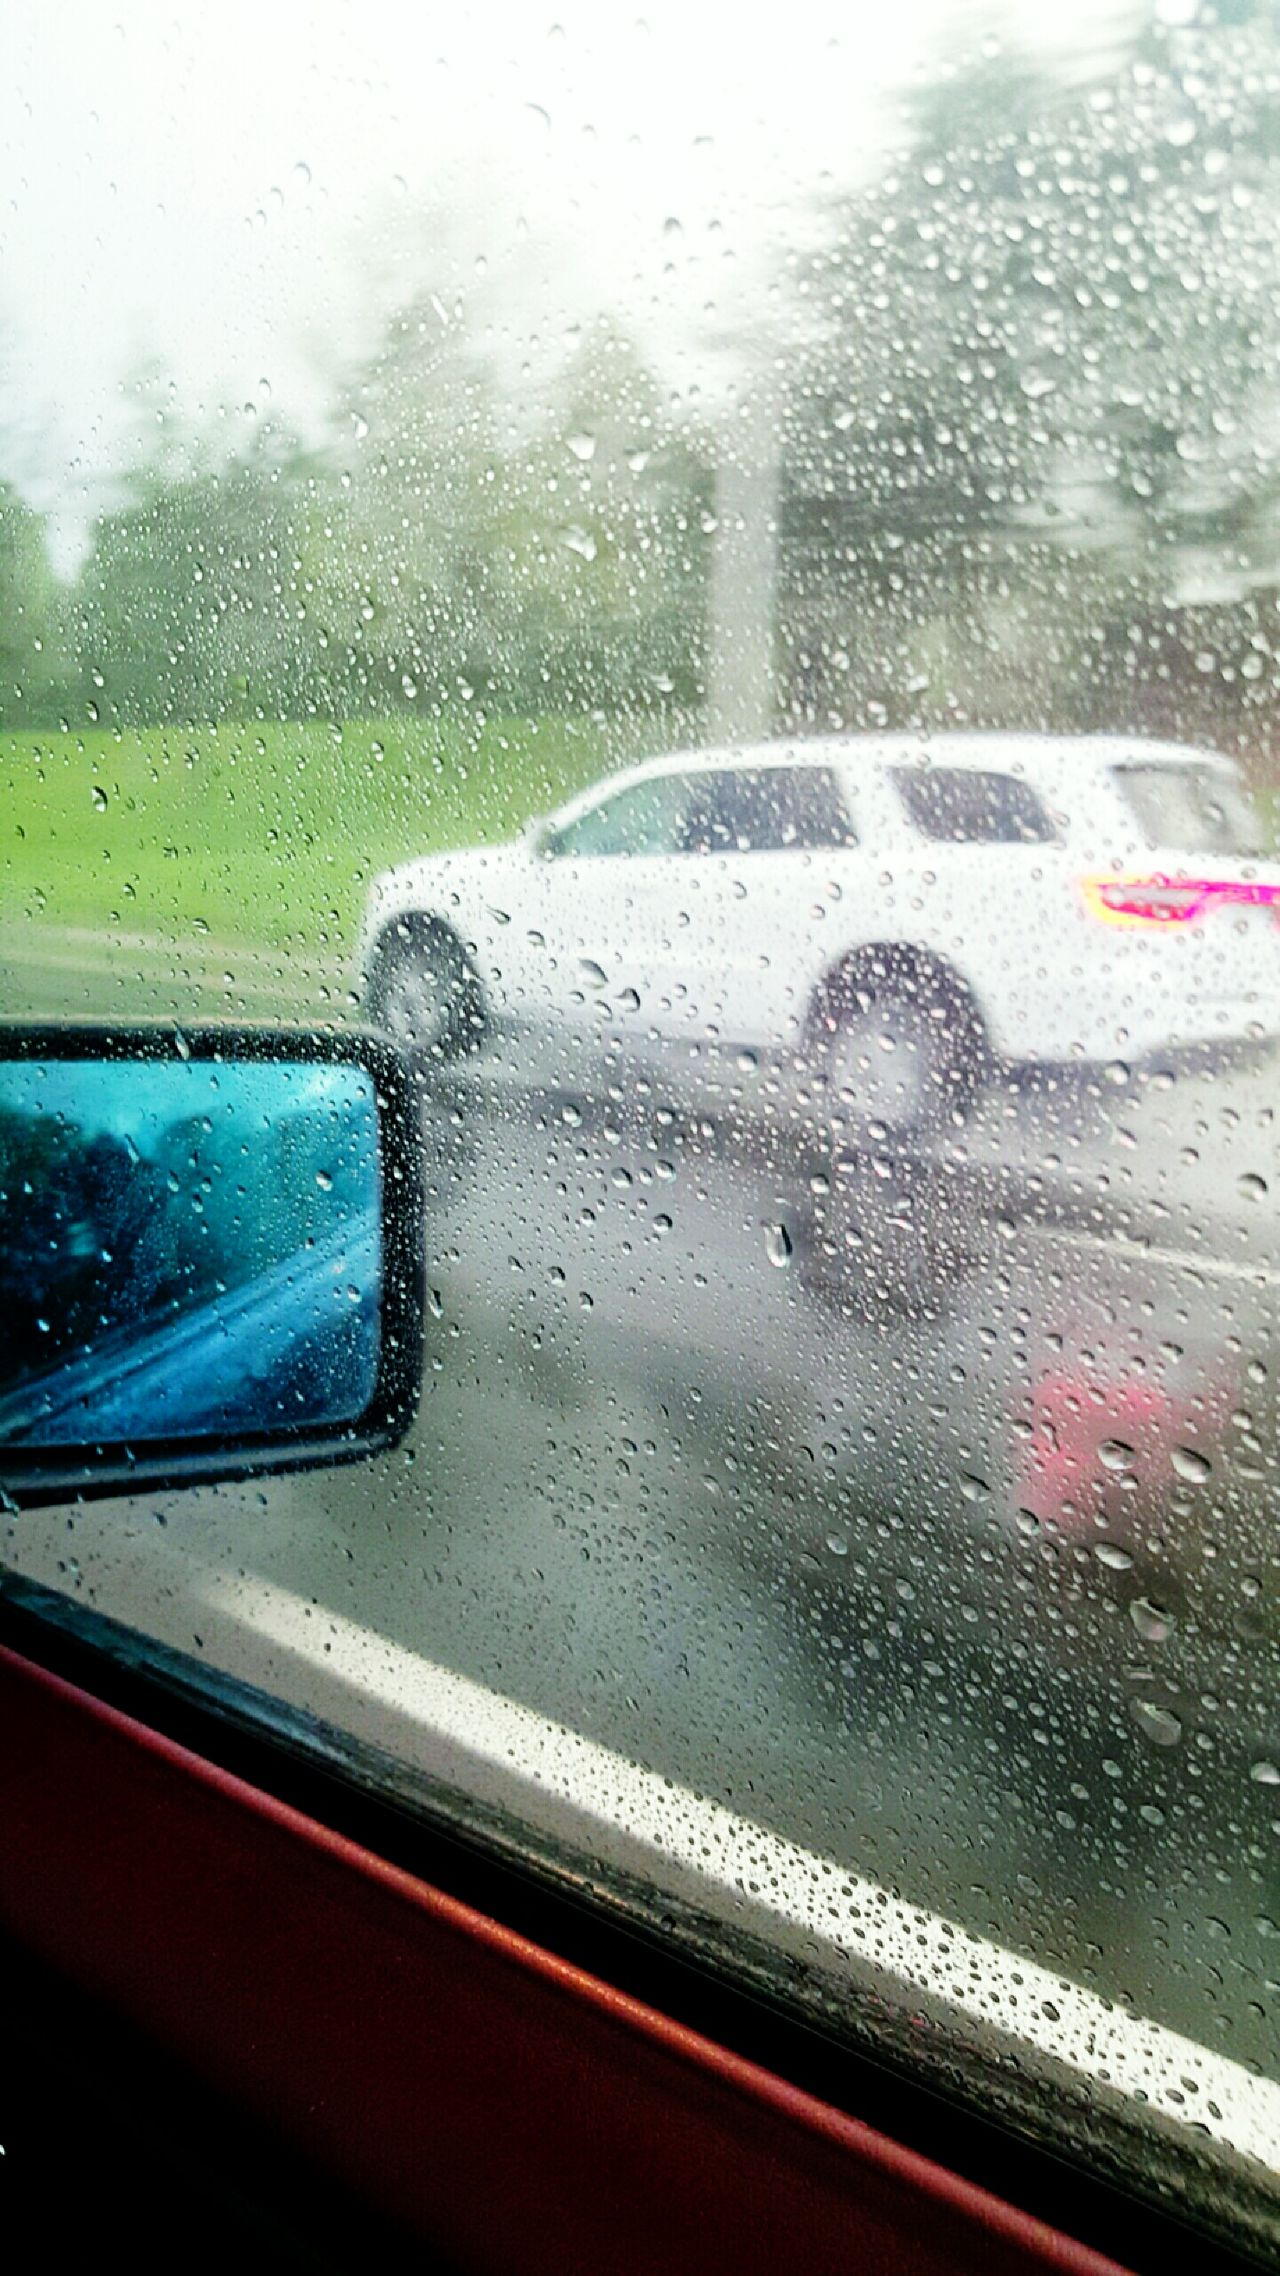 Raining Outside Inthecar Rainshower Raindrops Car Cars Mirror Wet Day Water Reflection Driving Around Drivebyphotography From My Point Of View Samsung Galaxy S6 Edge S6edgephotography Deceptively Simple EyeEm Best Edits EyeEm Best Shots Blurred Motion Blurred Background Blurrypicture Waterdropsonglass. Raindropsonmywindow On The Way The Journey Is The Destination